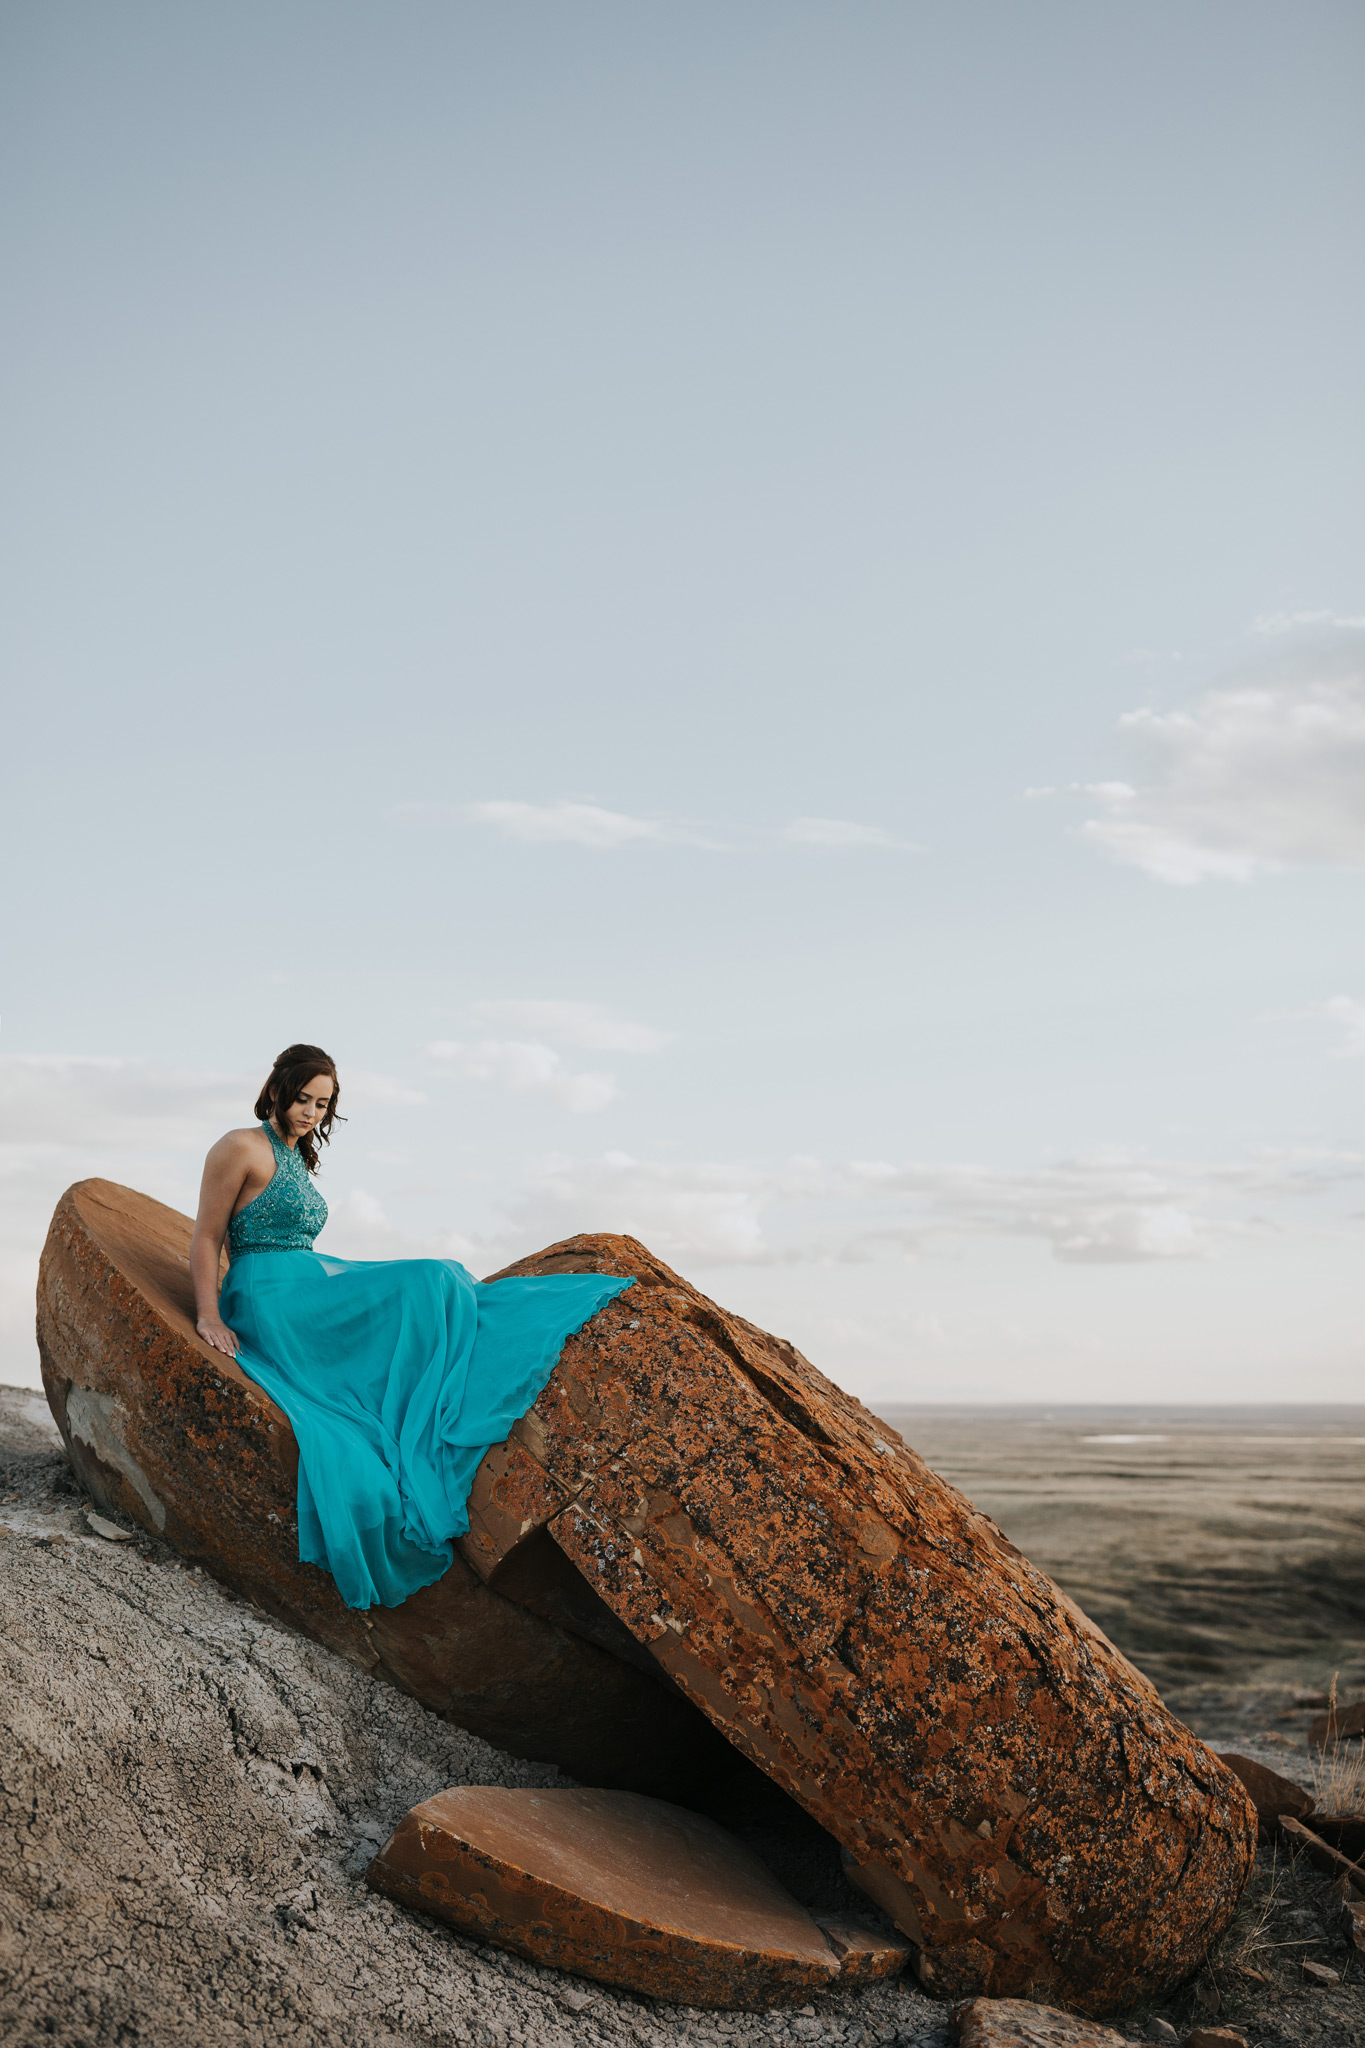 girl sitting on large red rock dress draped over edge